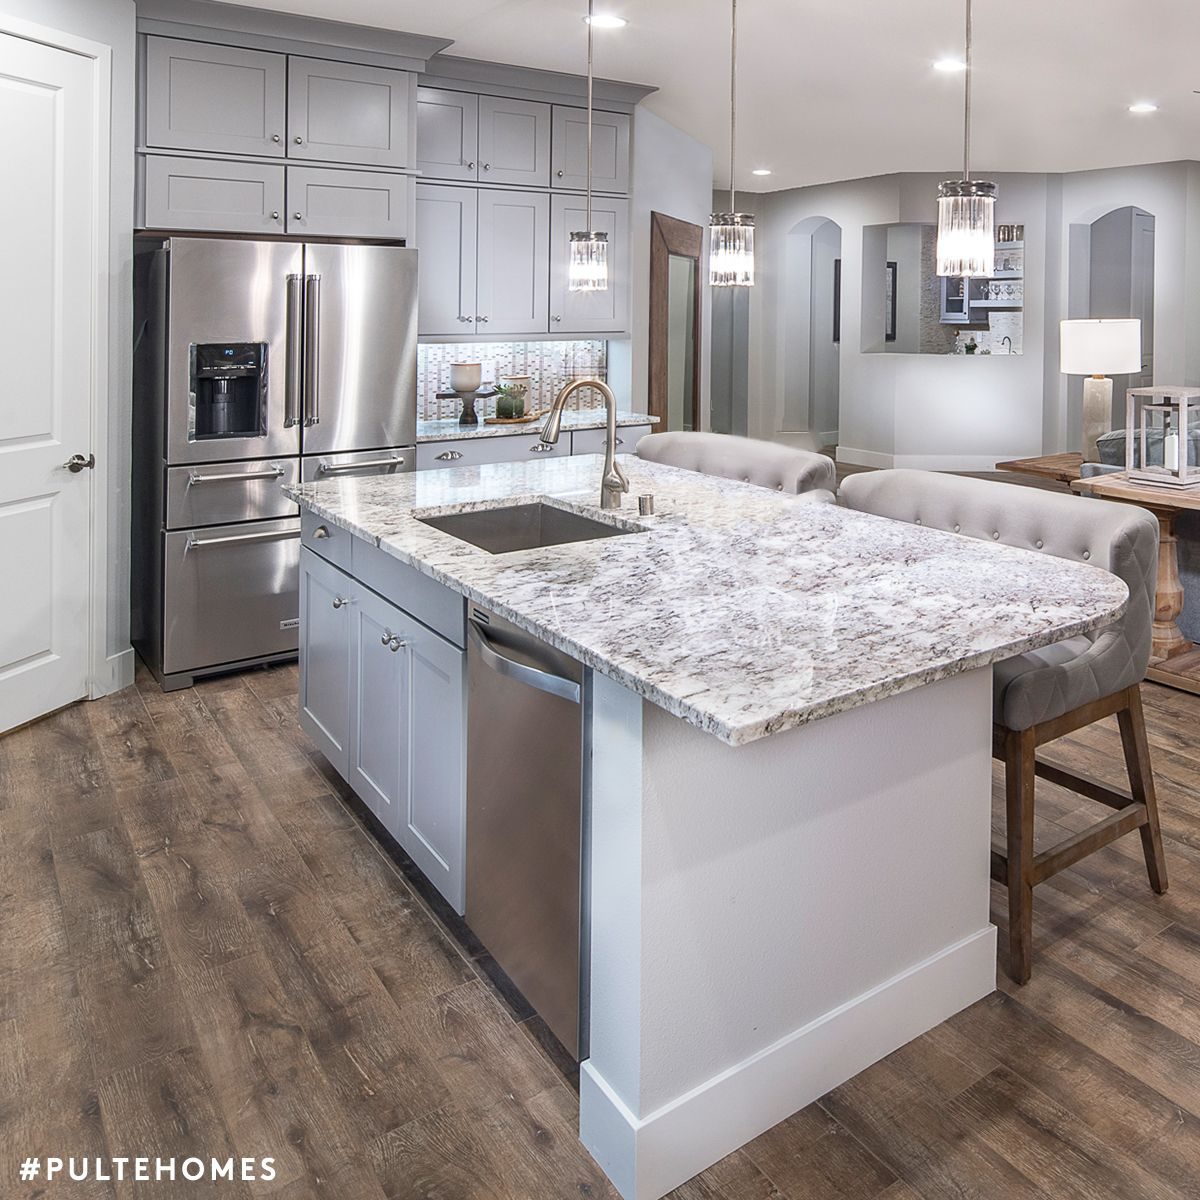 Exceptionnel This Inviting Kitchen Is The Epitome Of Refined Elegance In Chic, Soothing  Grays. Pulte Homes